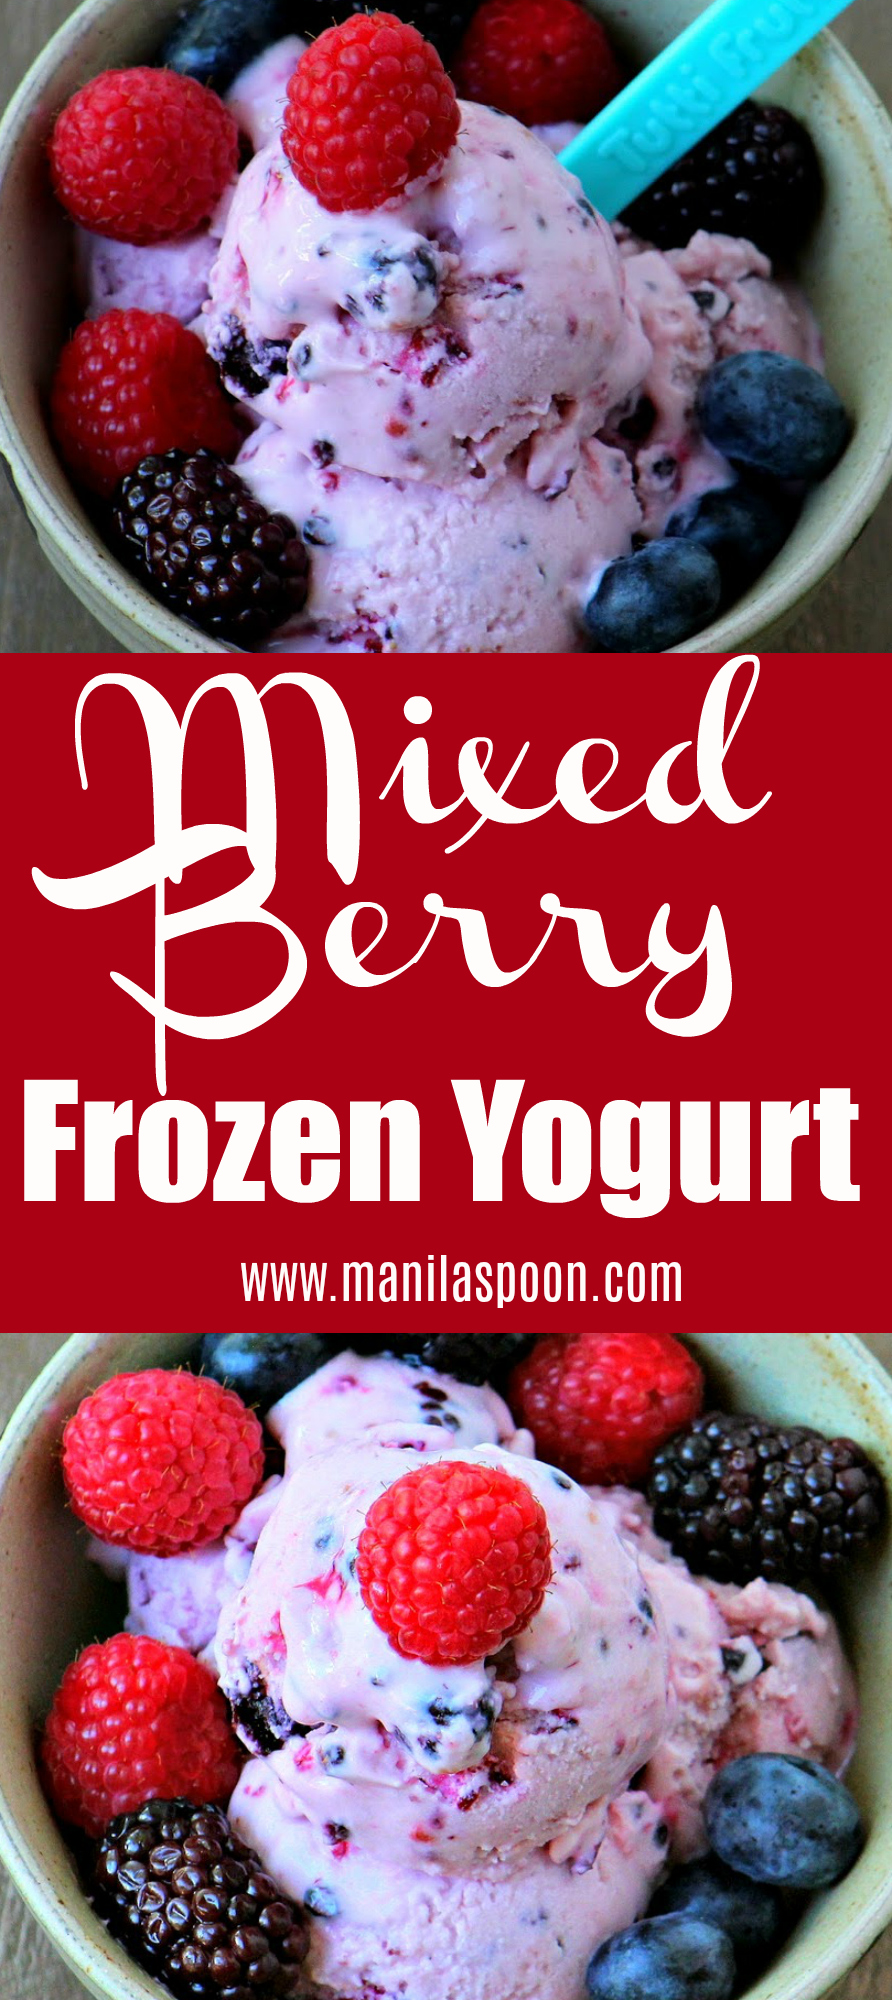 Loaded with fruits and made with greek yogurt and has less sugar, too this is summer's guilt-free treat! Easy to make, this delicious and healthy frozen Mixed Berry Frozen Yogurt is perfect for the entire family!